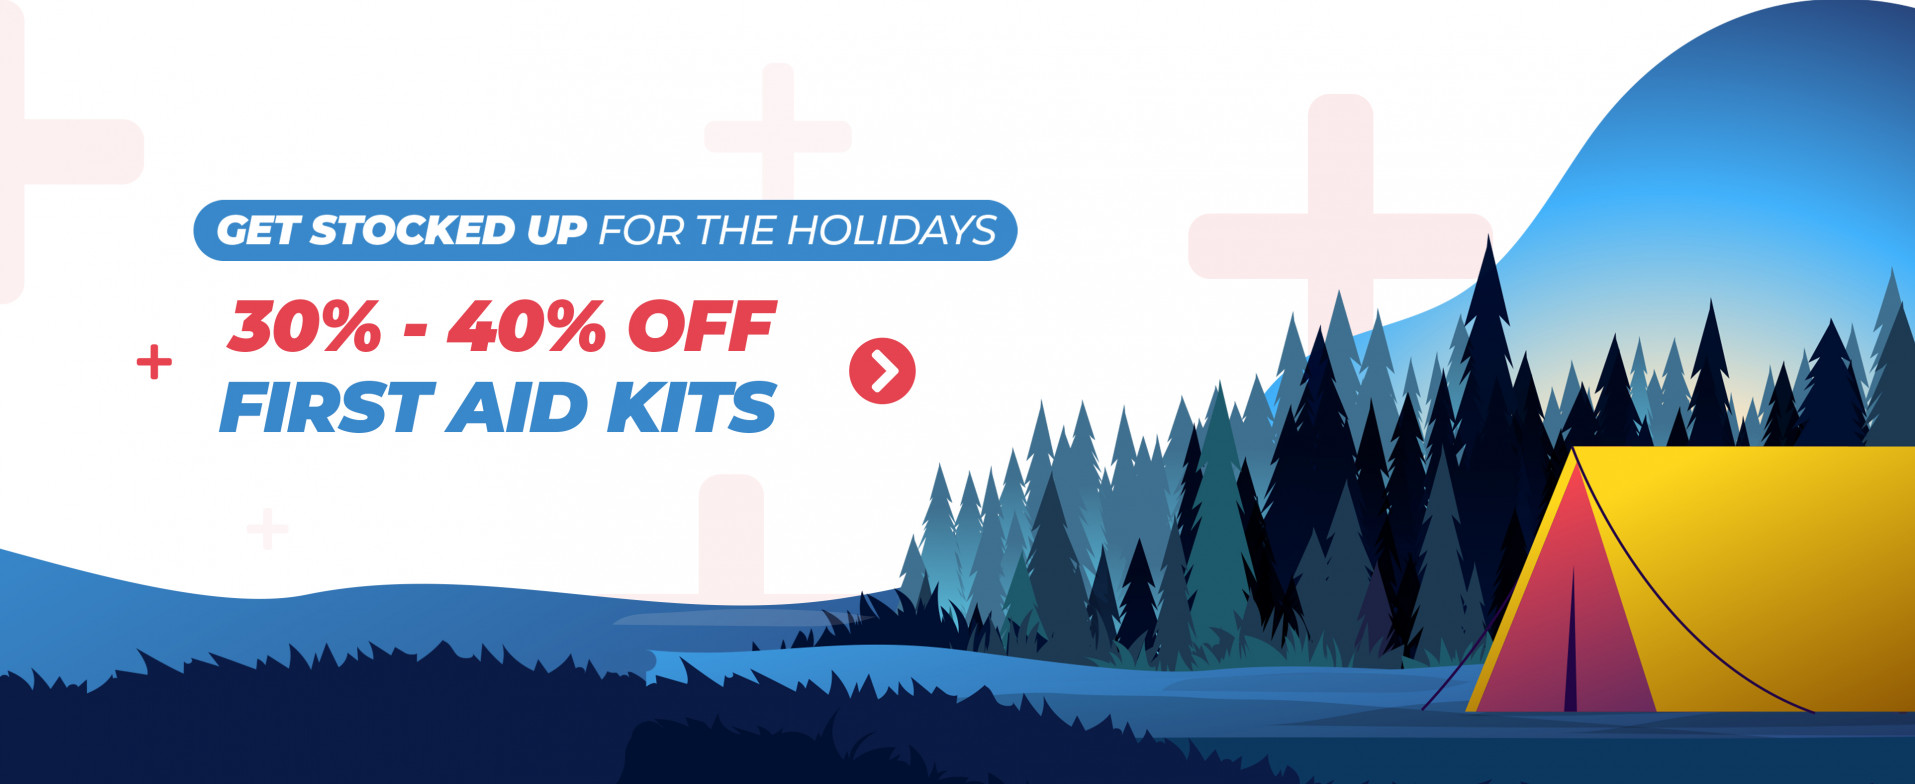 30-40% off First aid Kits Banner Campaign